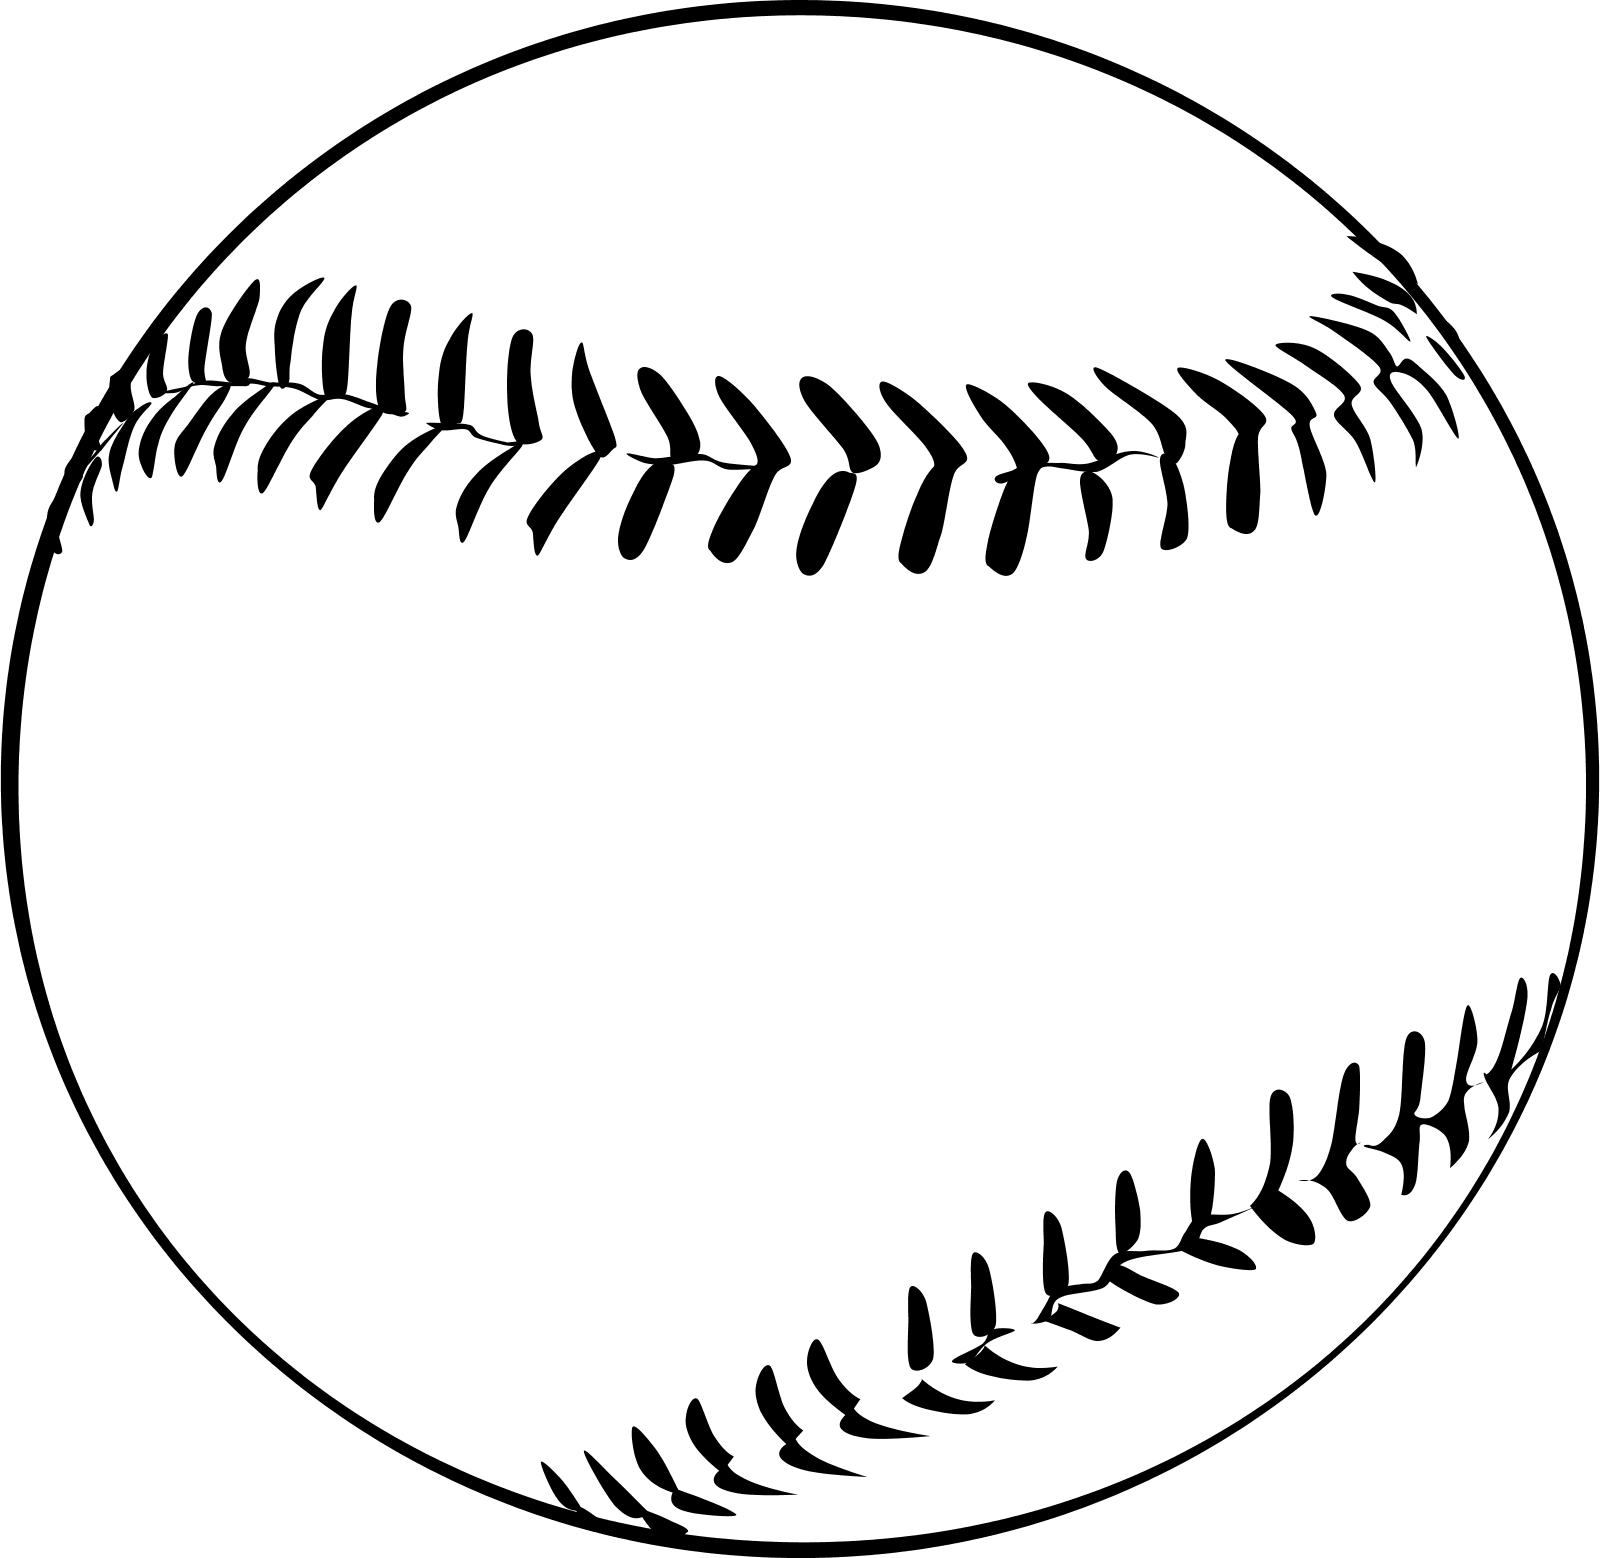 Scared baseball clipart vector black and white 28+ Collection of Baseball Clipart Png | High quality, free cliparts ... vector black and white